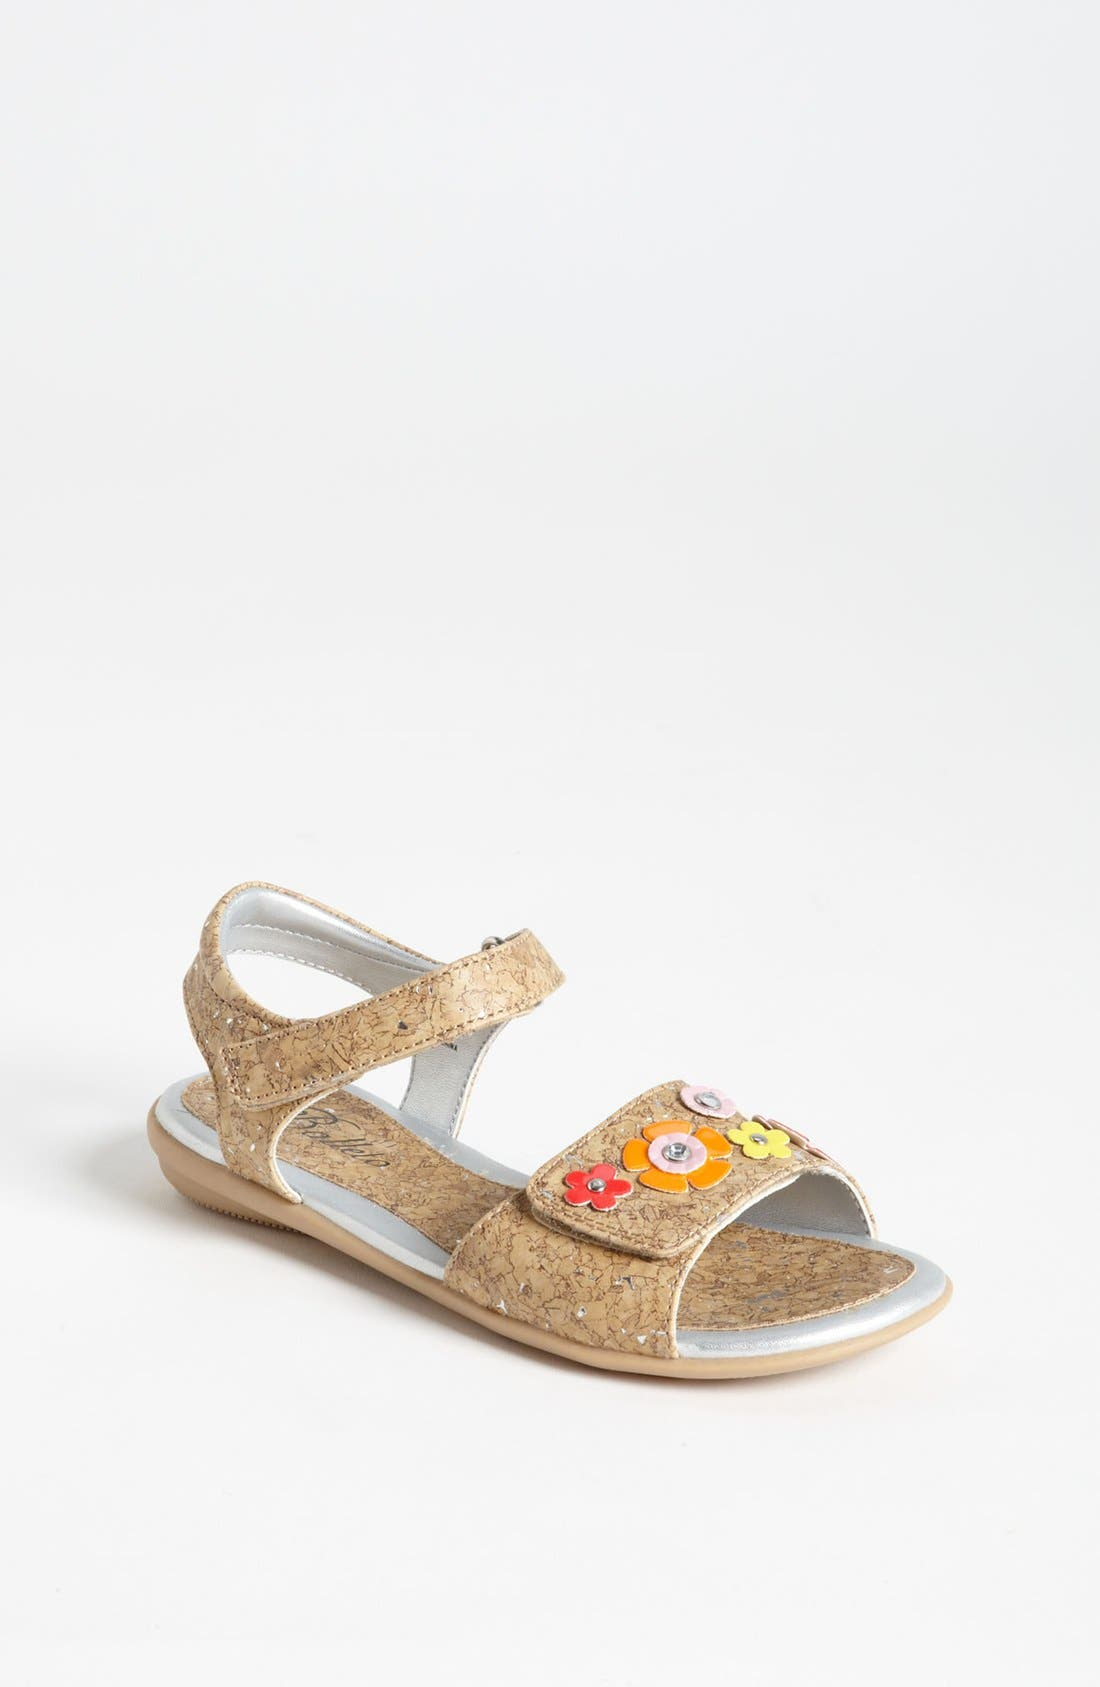 Alternate Image 1 Selected - Balleto 'Corky' Sandal (Walker, Toddler, Little Kid & Big Kid)